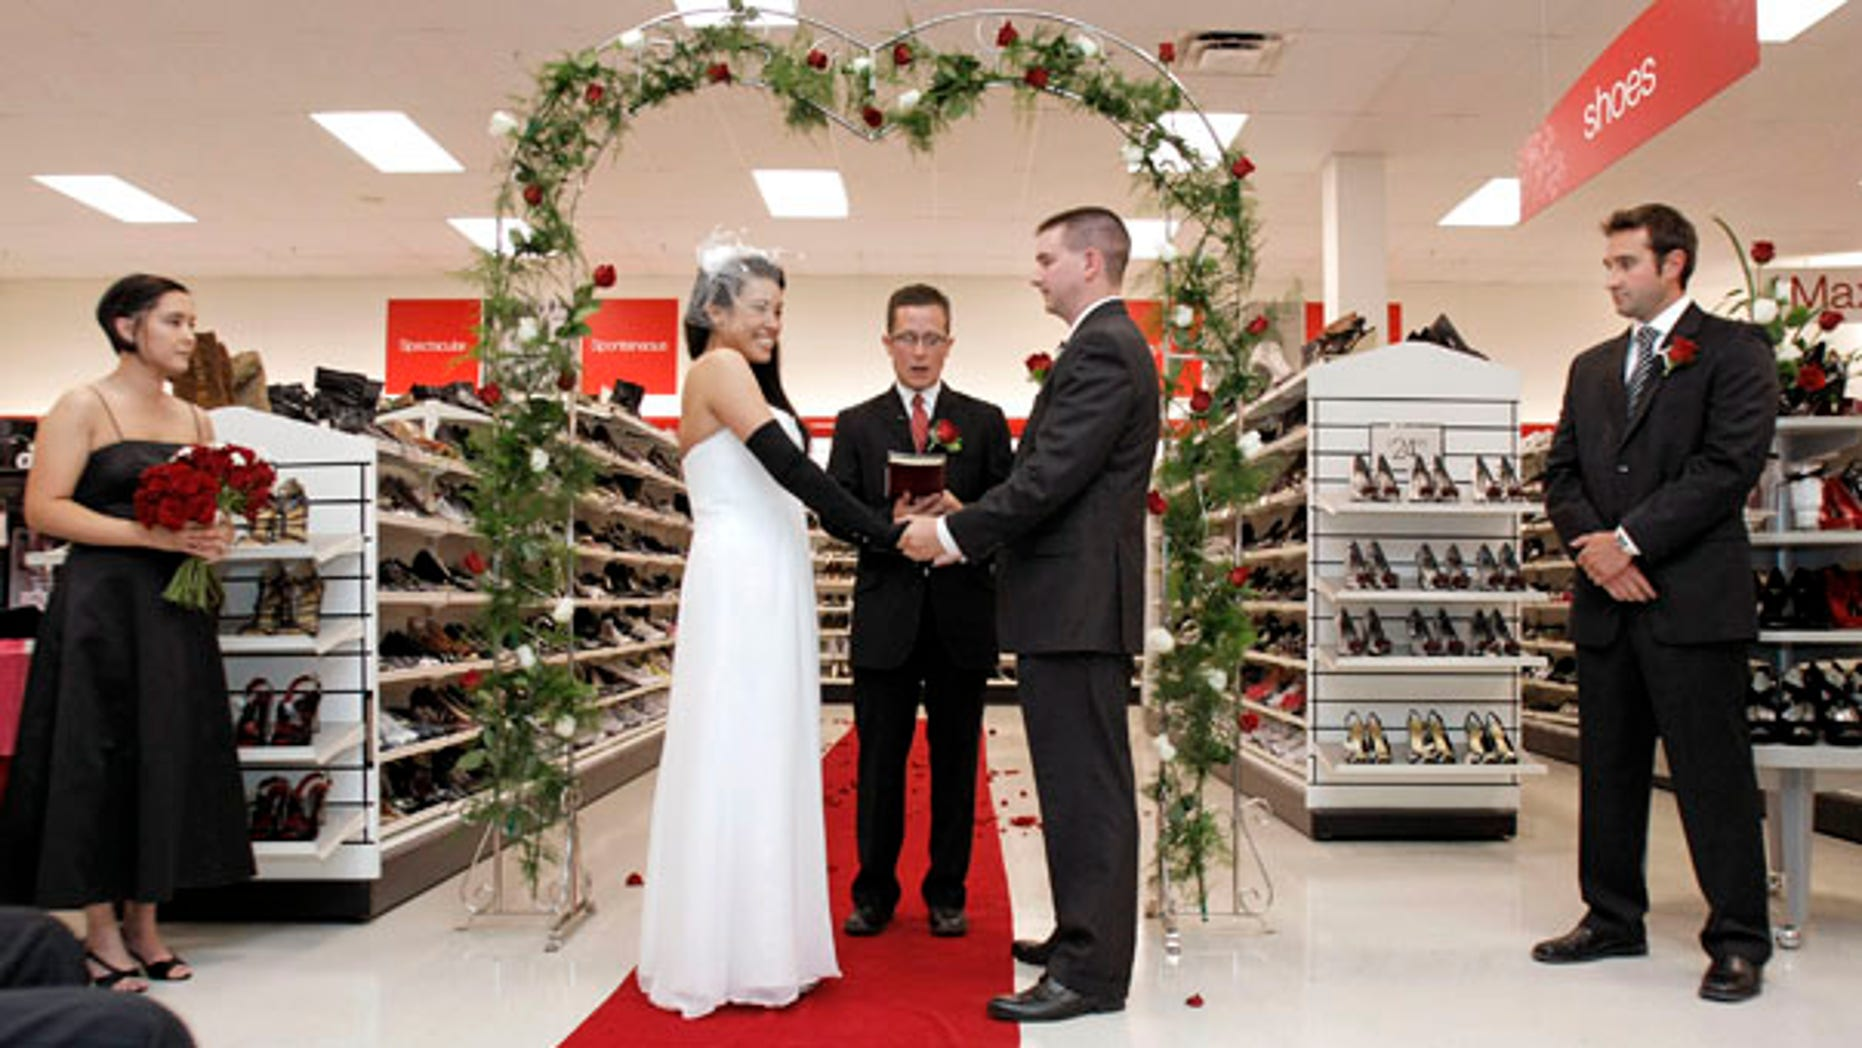 July 24: Self-proclaimed 'Maxxinista' Lisa Satayut and her new husband, Drew Ellis exchange vows in their local T.J.Maxx store in Mt. Pleasant, Mich. The couple chose to wed at the retailer because the bride calls it her 'happy place.'